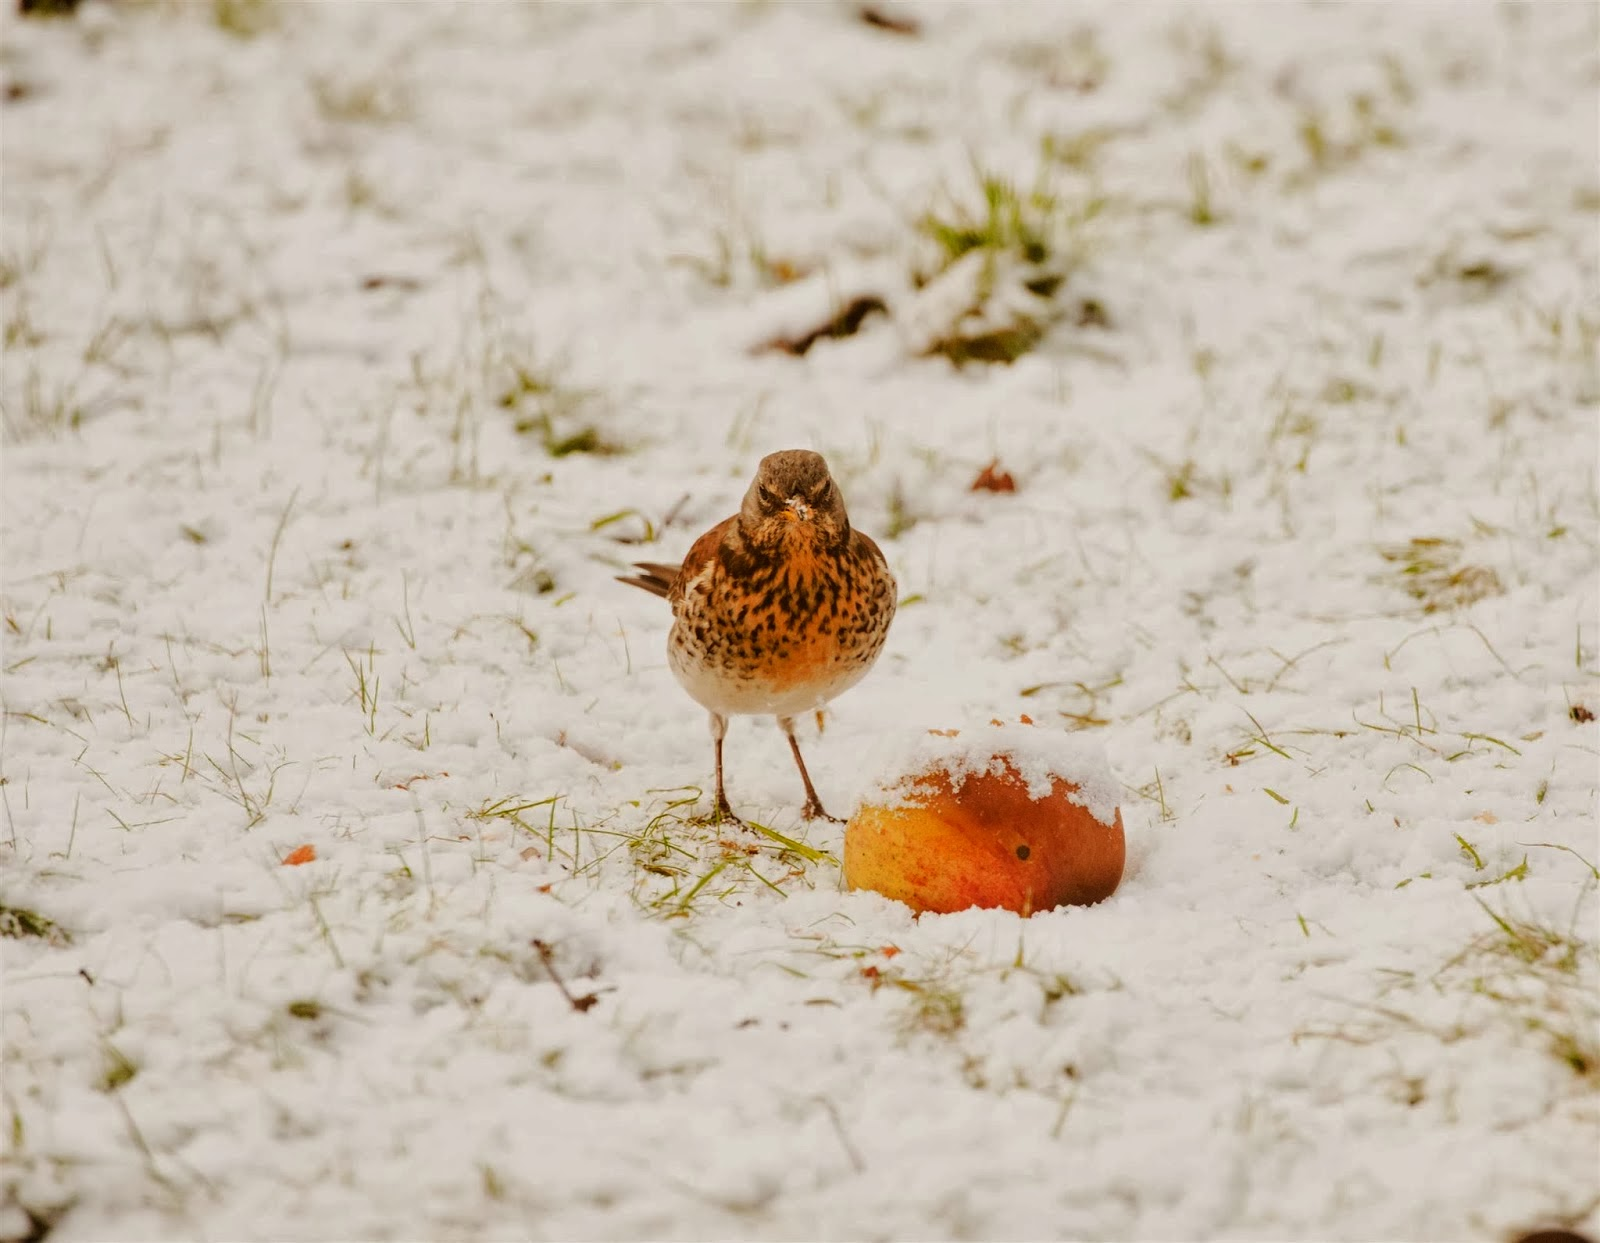 RSPB FieldFare Bird Eating Food In Snow